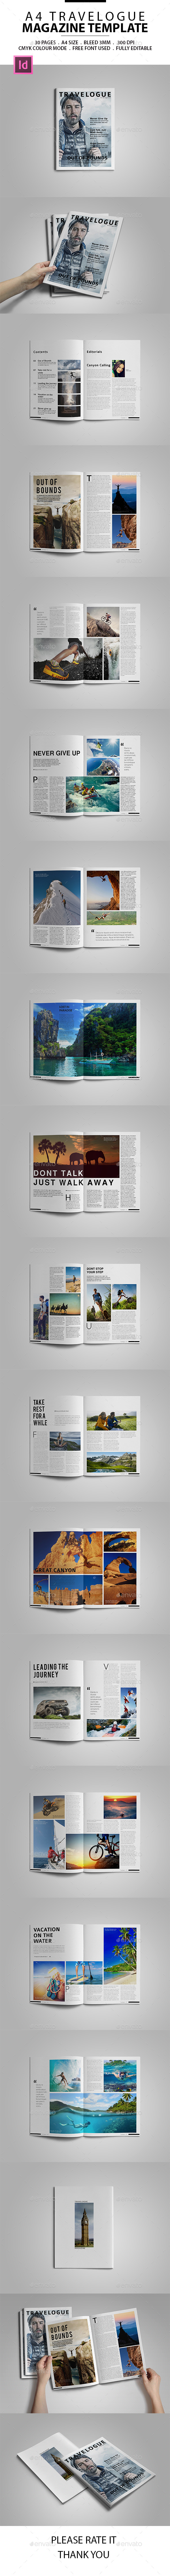 A4 Travelogue Magazine Template - Magazines Print Templates